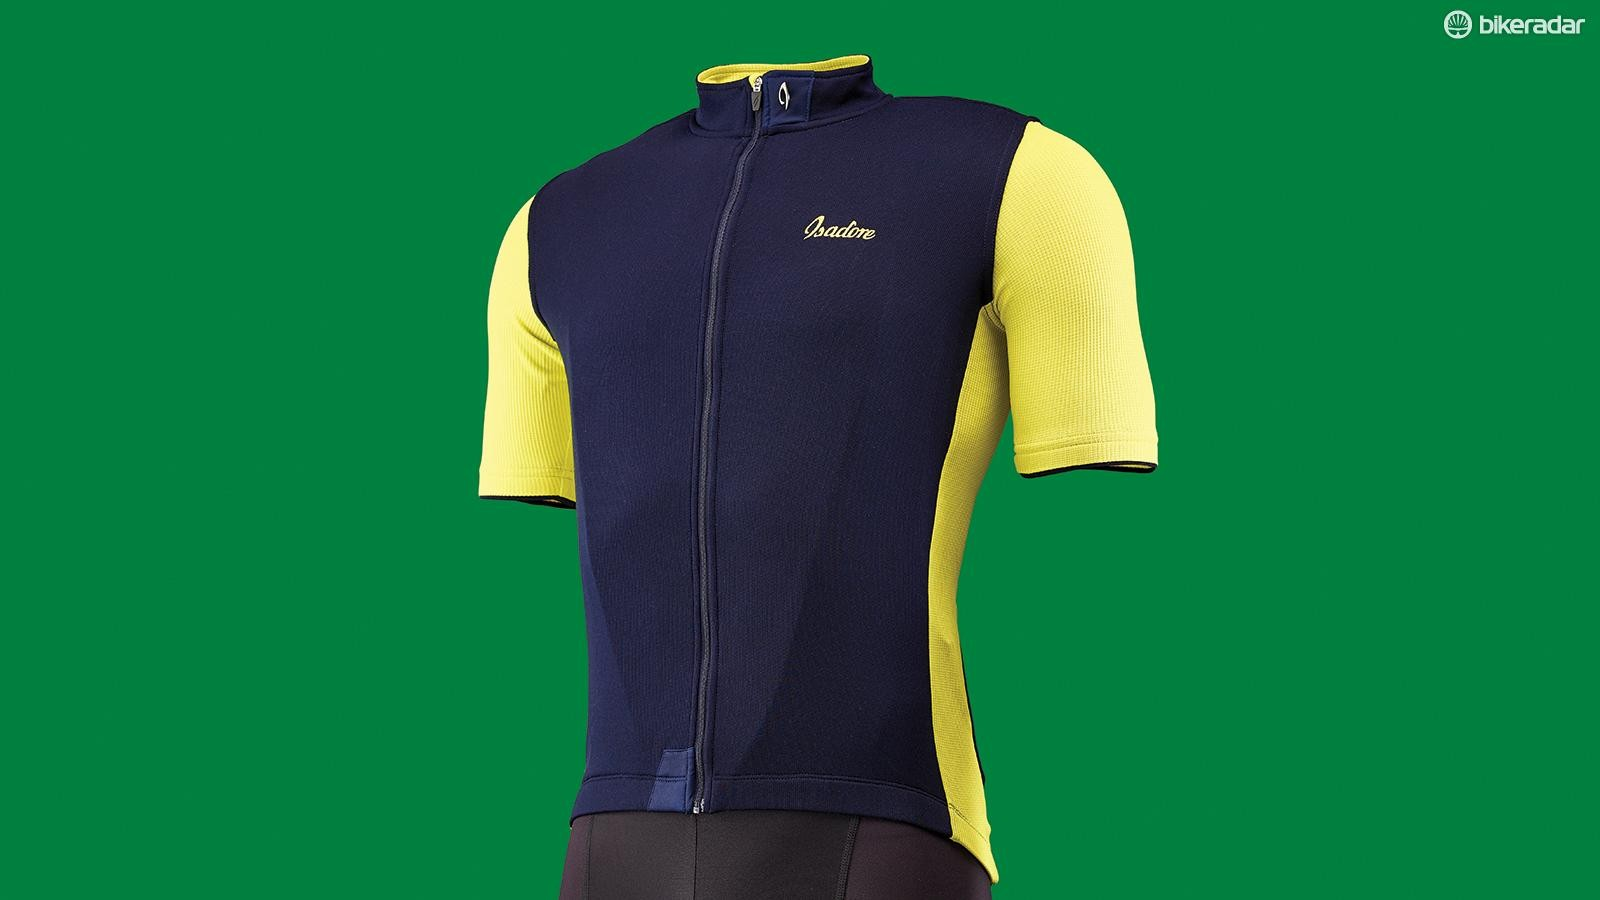 The Signature jersey uses a mix of merino wool, polyester and Lycra